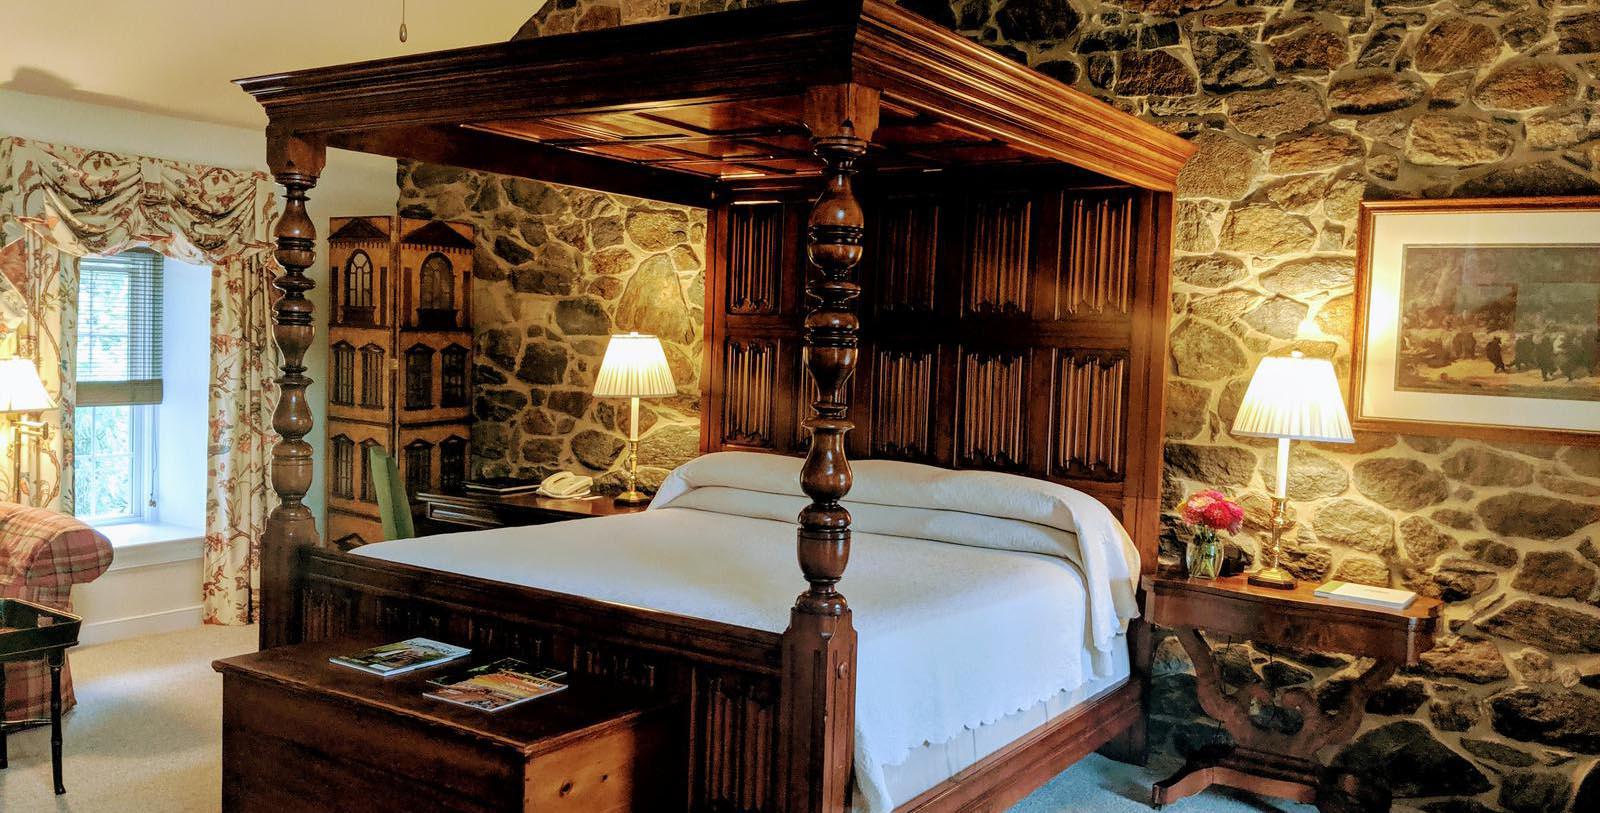 Image of Guestroom Interior The Inn at Montchanin Village, 1799, Member of Historic Hotels of America, in Montchanin, Delaware, Accommodations